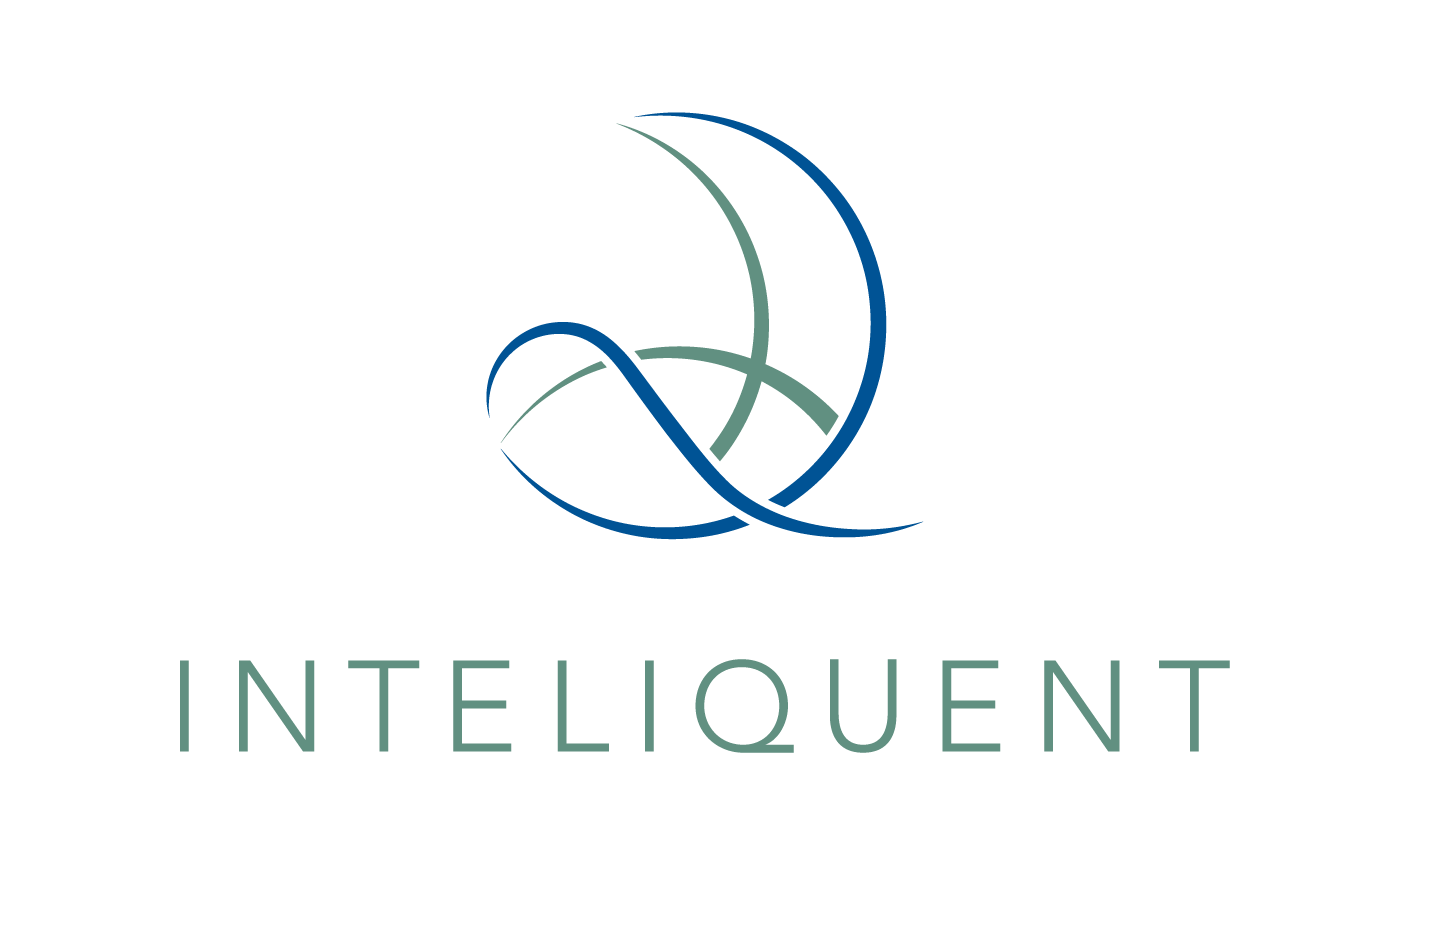 Inteliquent logo